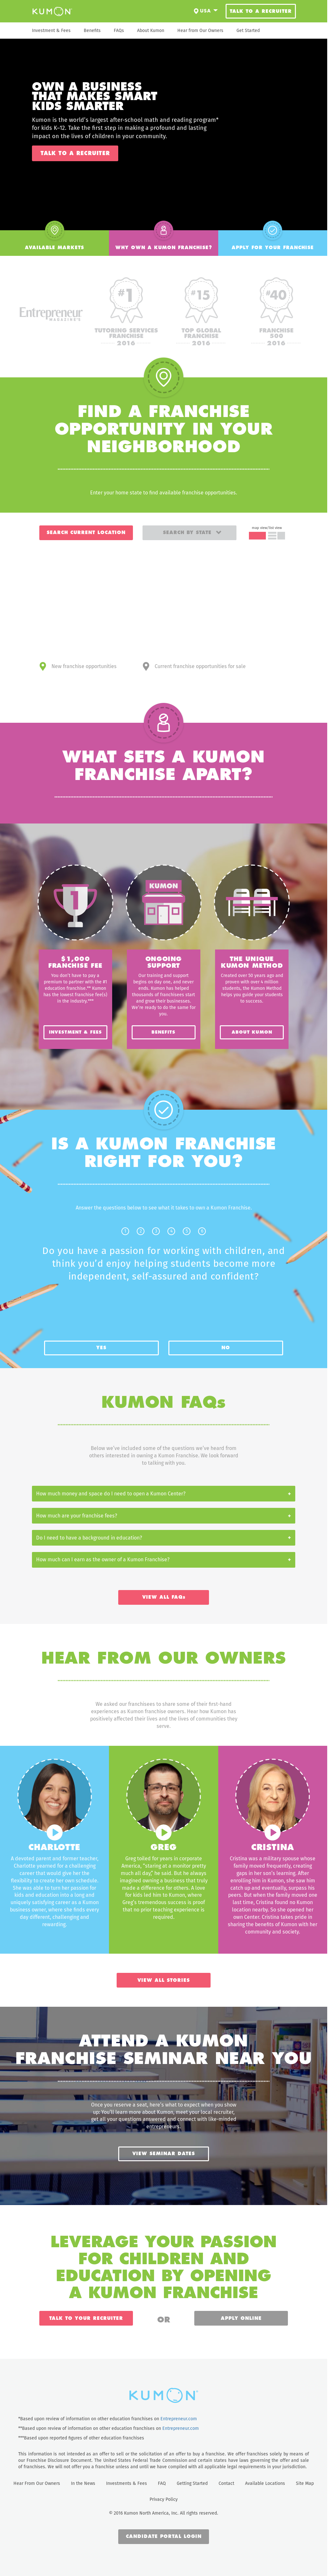 Kumonfranchise Competitors, Revenue and Employees - Owler Company ...